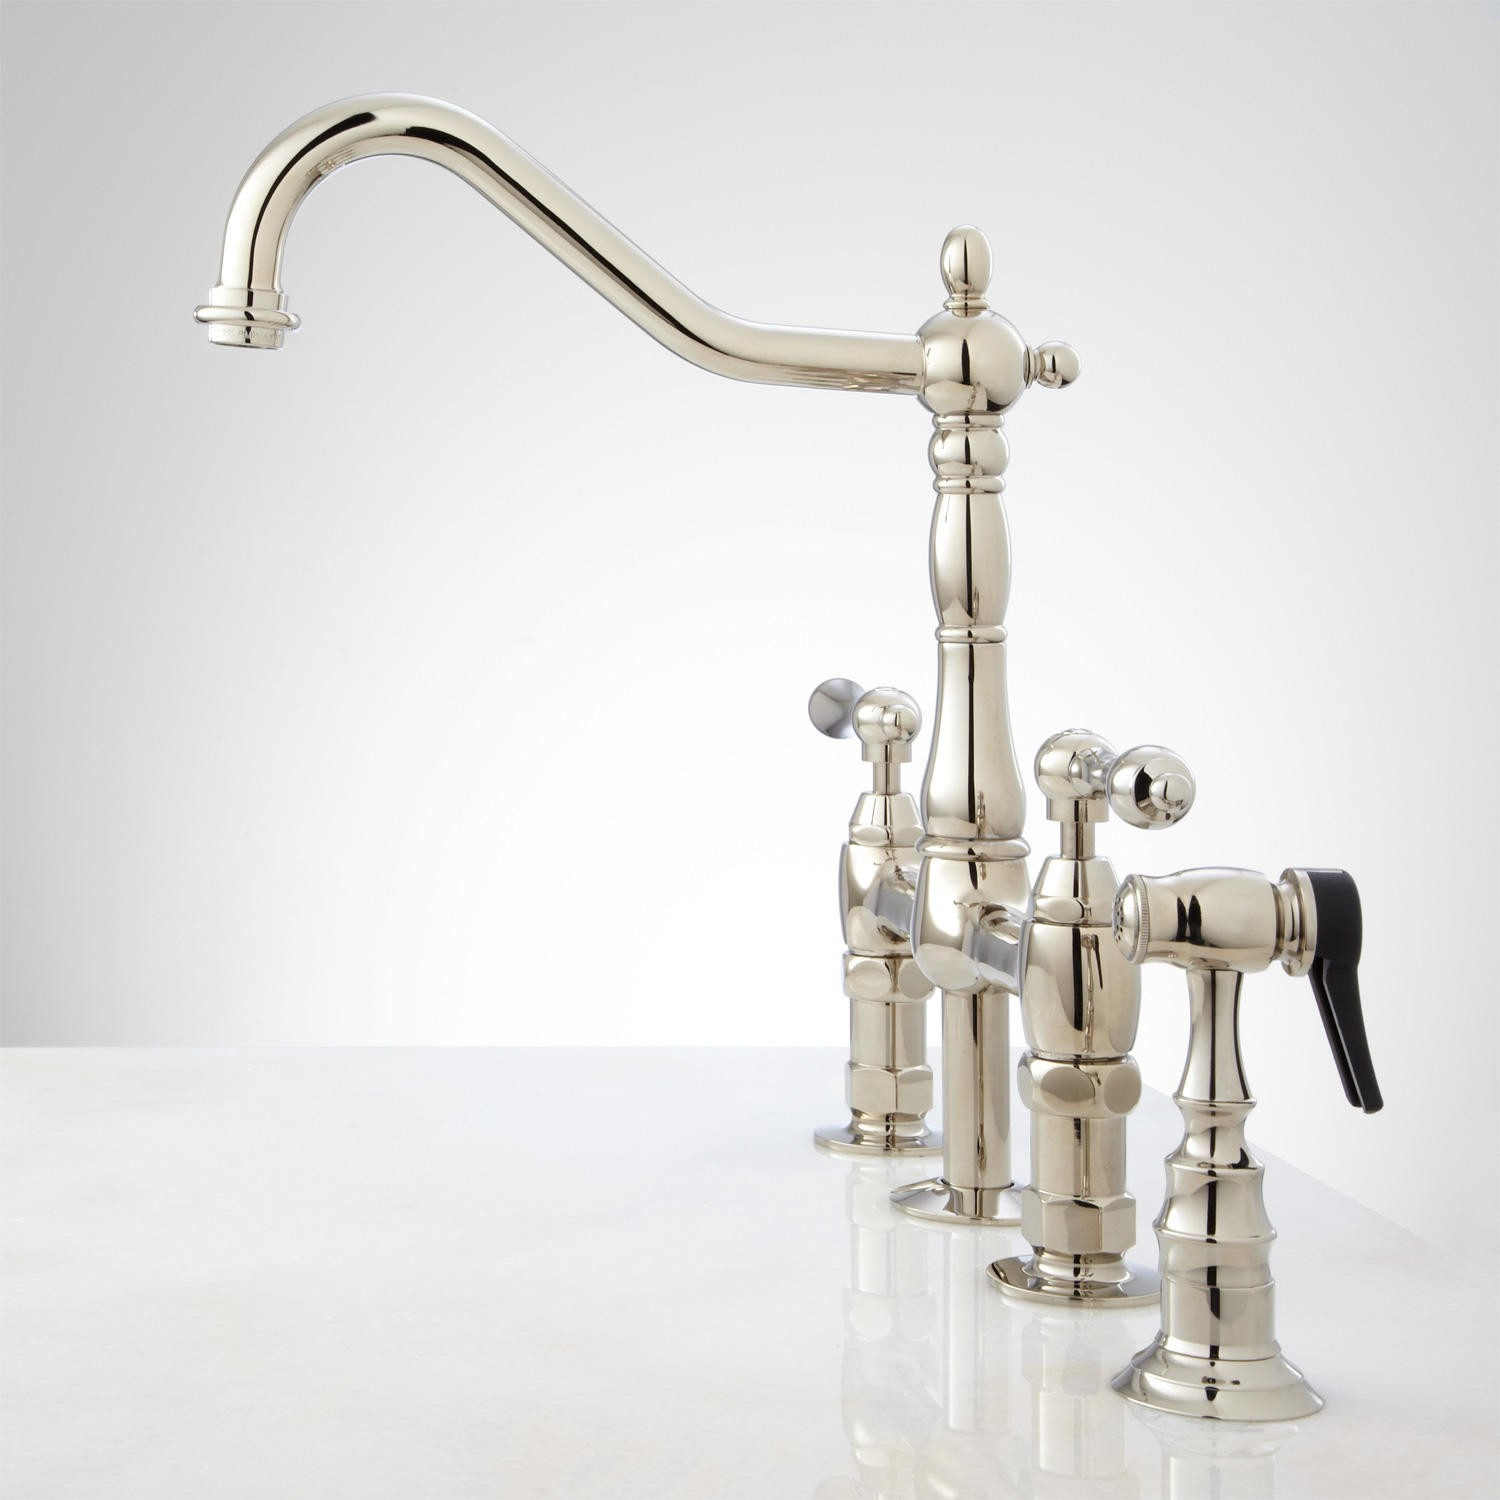 Wolverine Brass Kitchen Faucet Elegant Brass Kitchen Faucet Lovely throughout dimensions 1500 X 1500